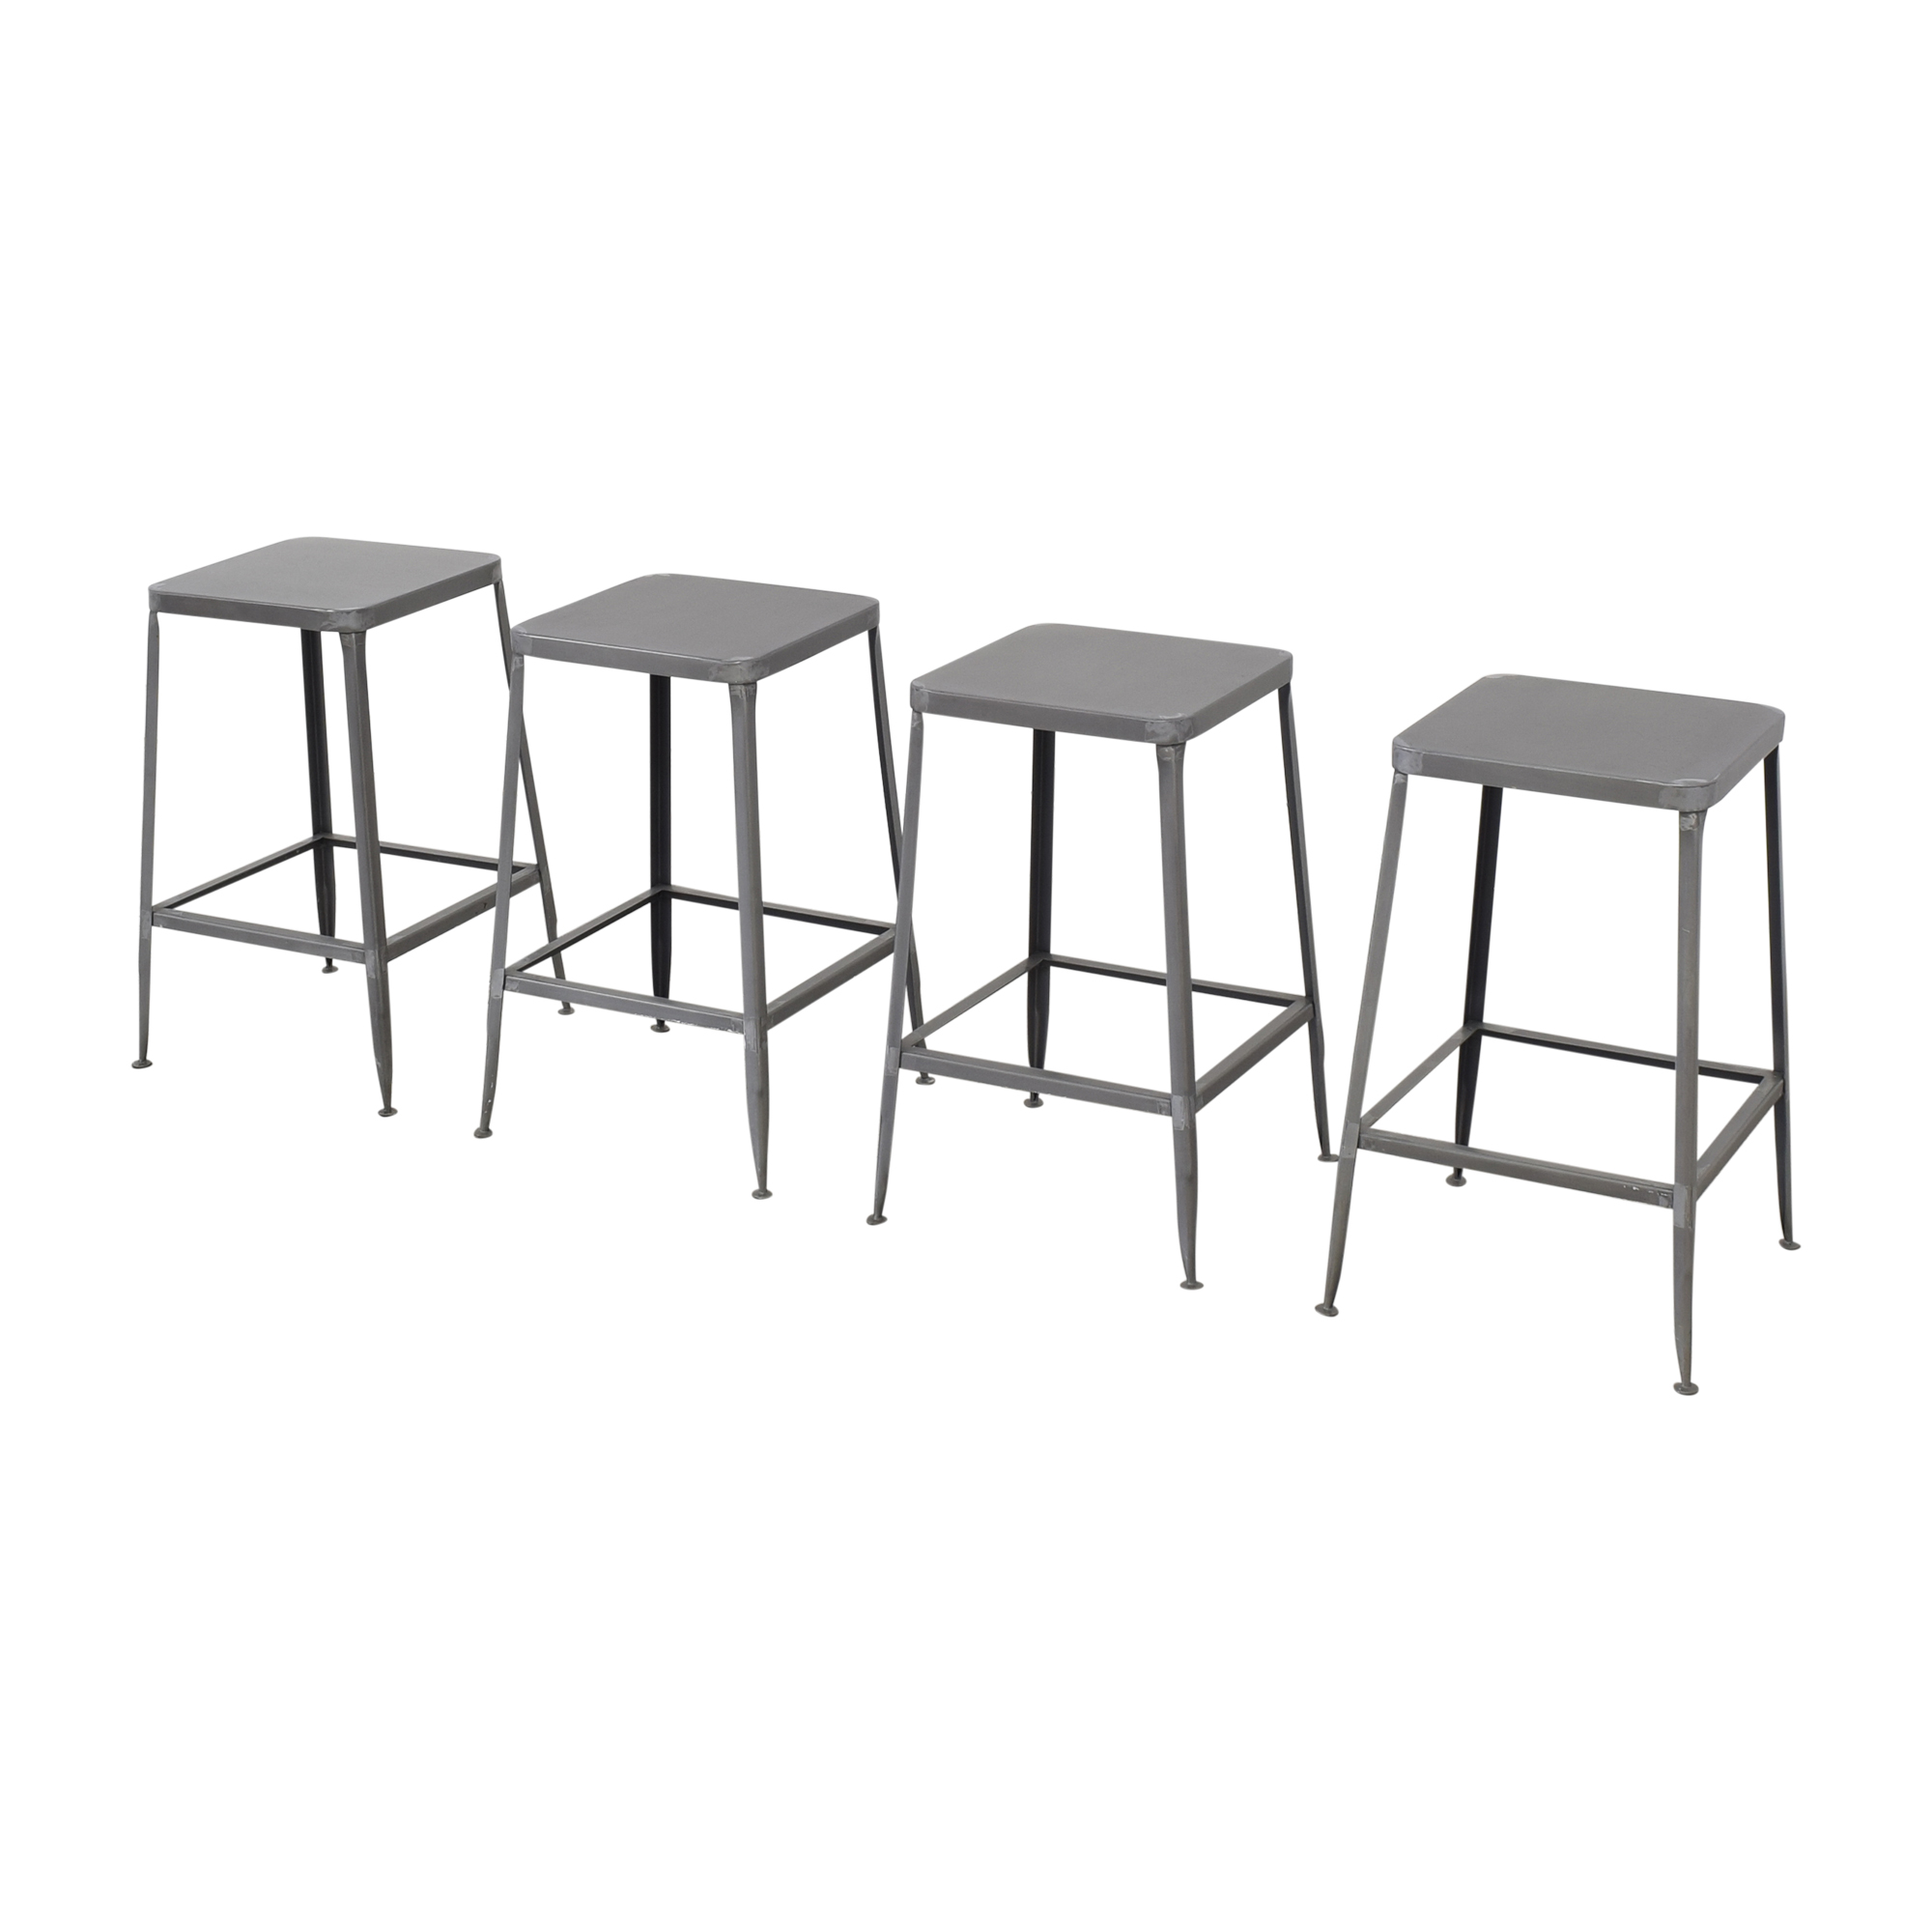 buy CB2 Flint Counter Stools CB2 Chairs